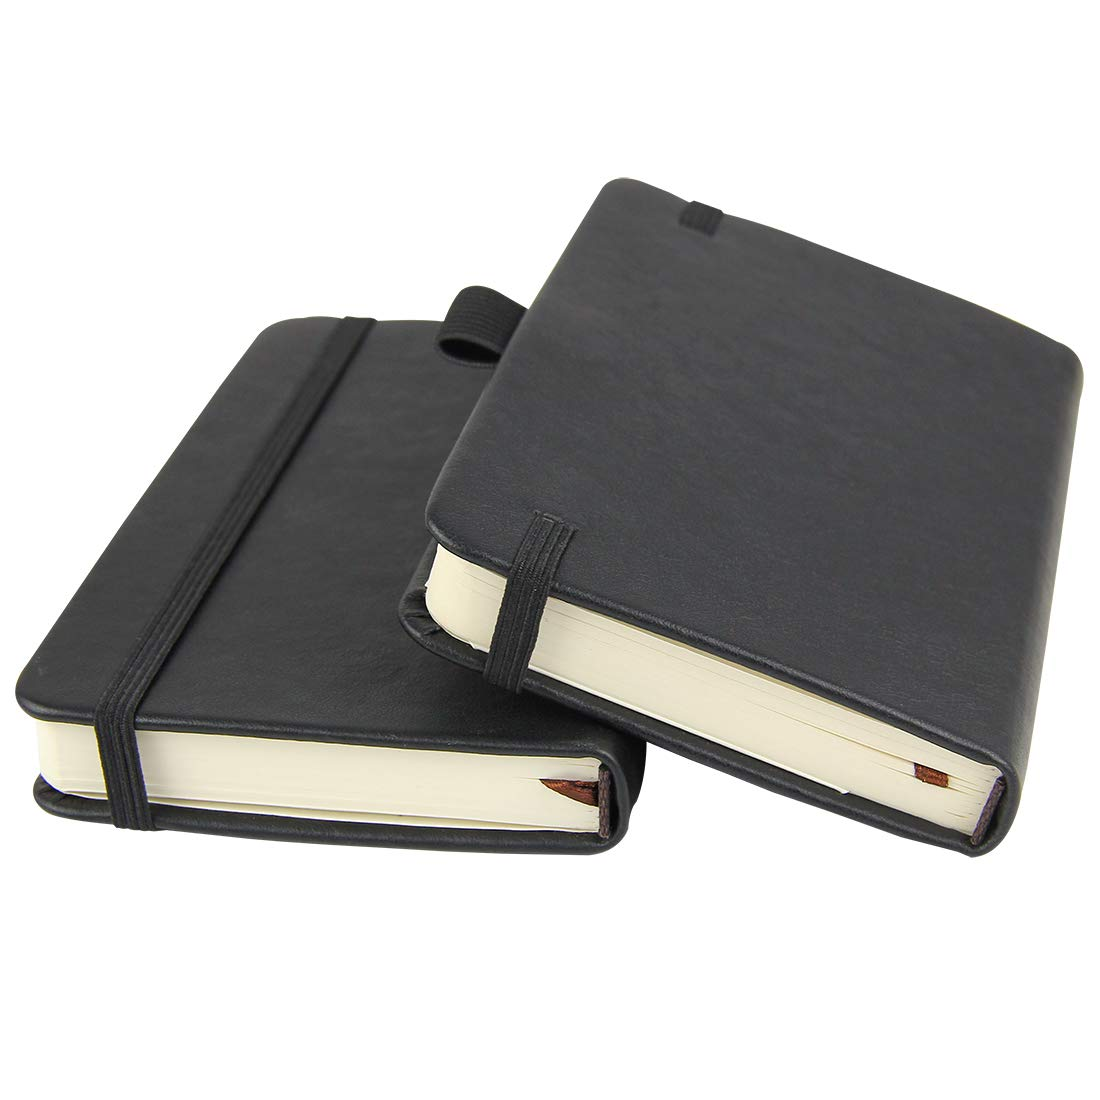 (2-Pack) Pocket Notebook 3.5'' x 5.5'', Small Hardcover Bullet Journal with Pen Holder, Inner Pockets, 100gsm Thick Ruled/Lined Paper, Black